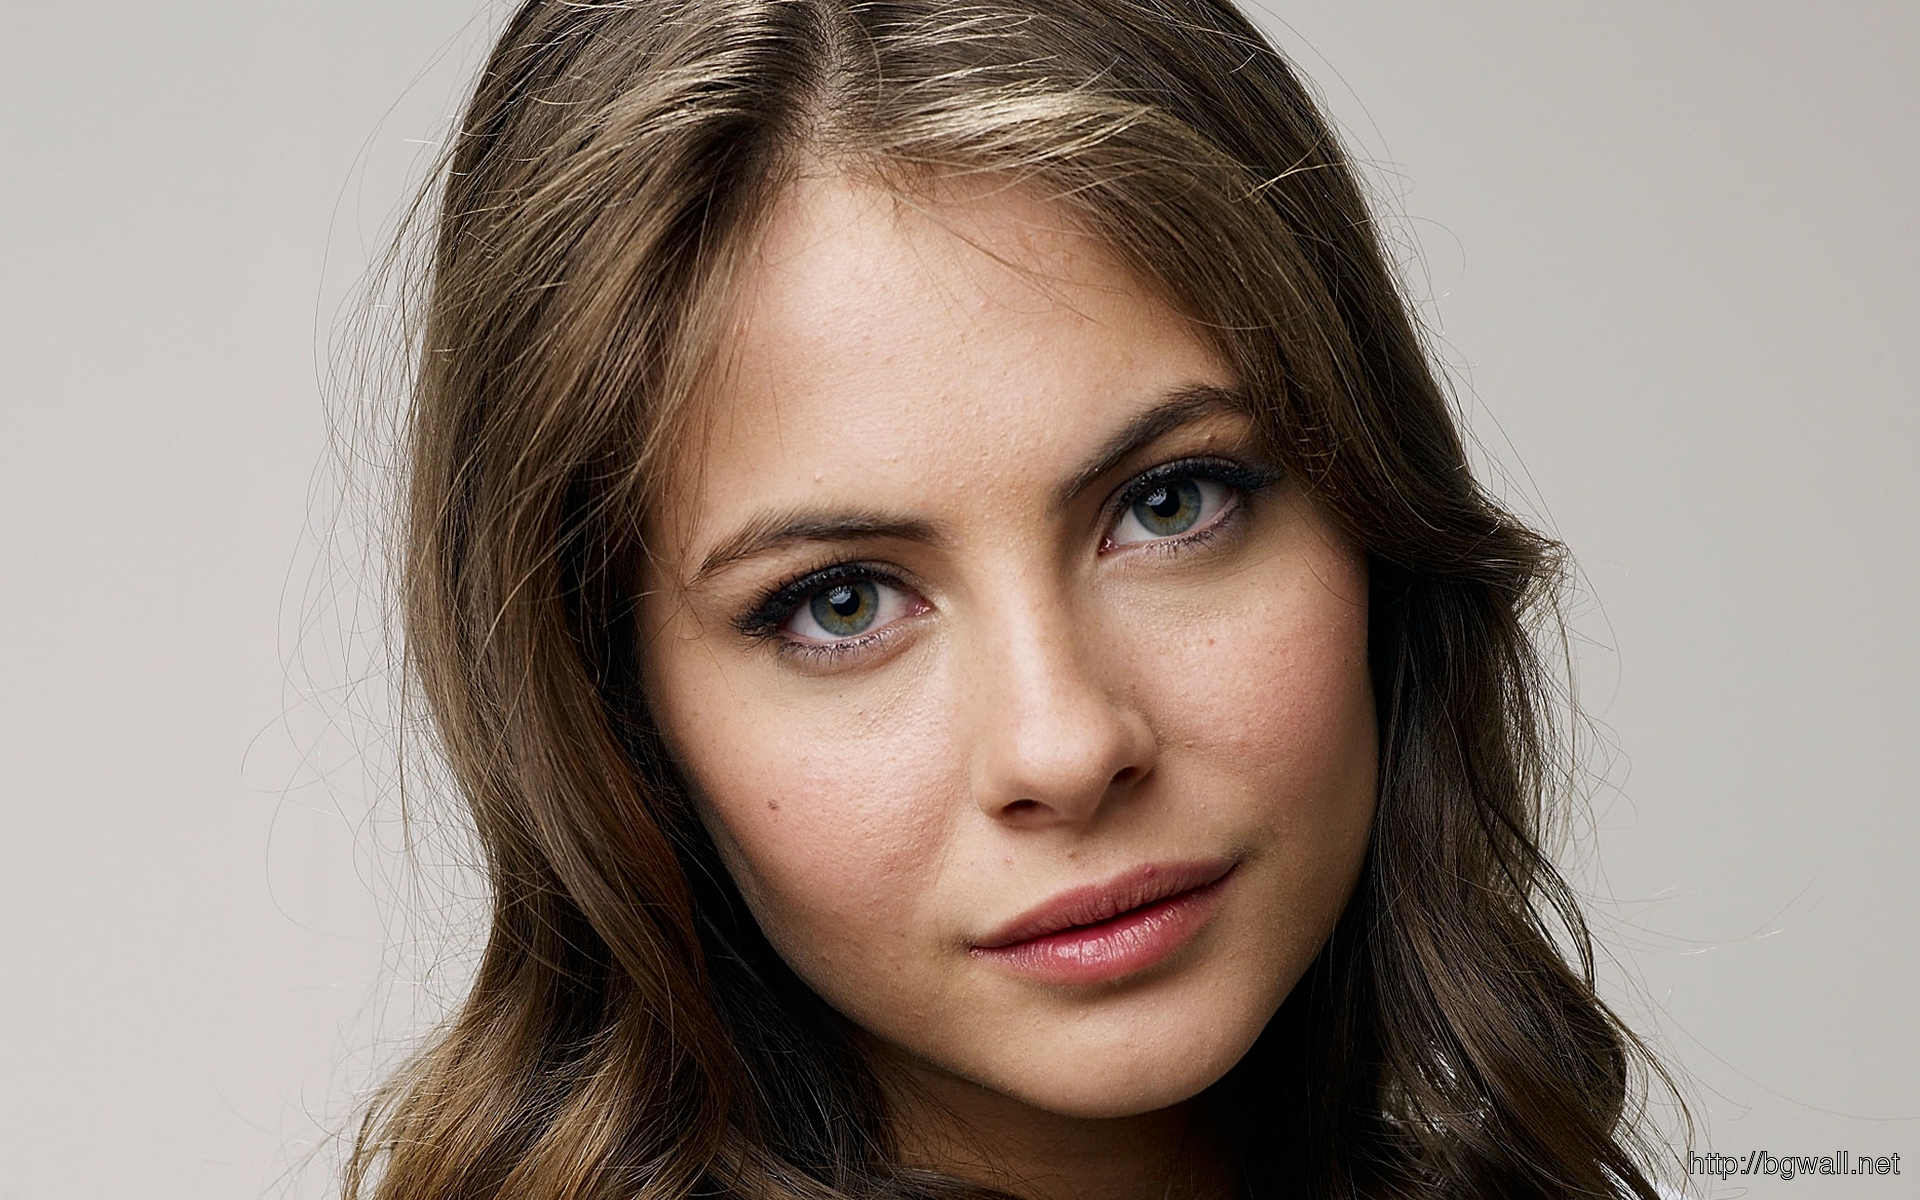 Willa Holland 1920 1200 Feb102010 500x315 Willa Holland Full Size